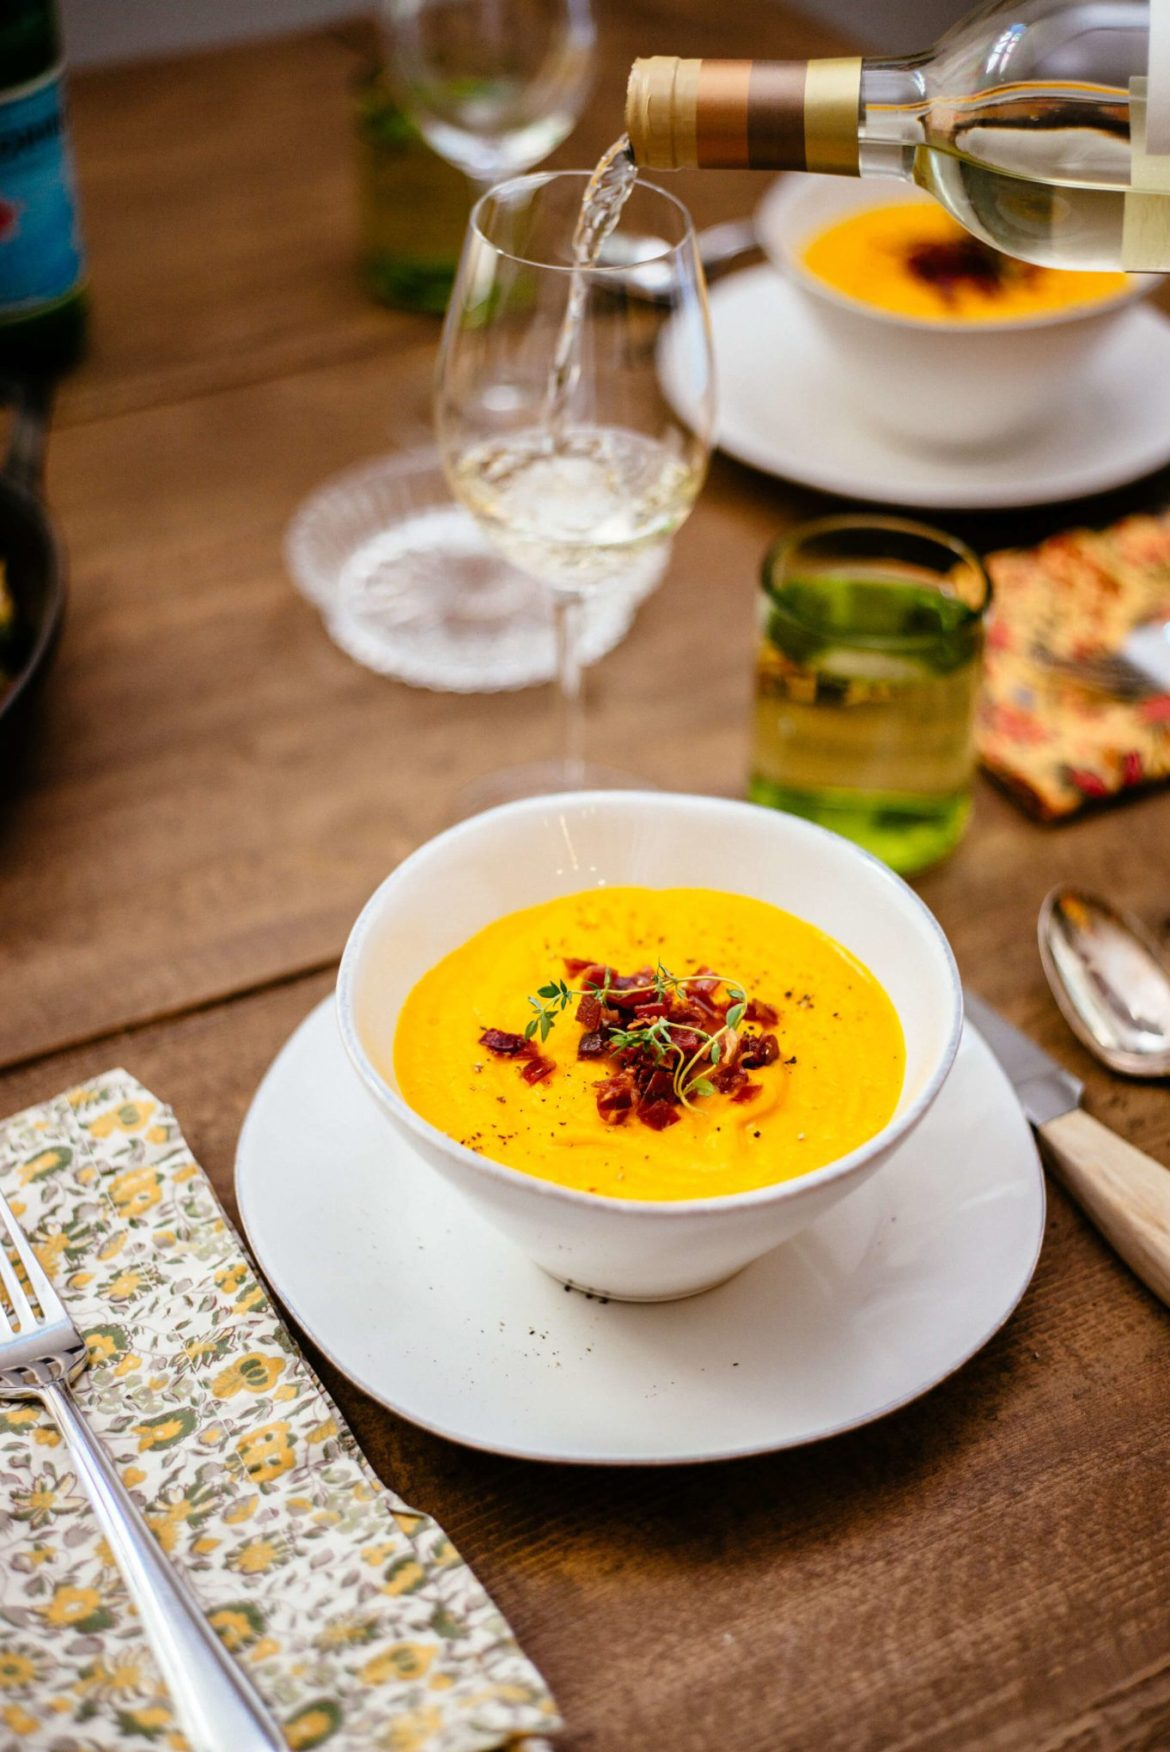 This Roasted Kabocha Squash Soup with Crispy Prosciutto is the perfect Thanksgiving soup